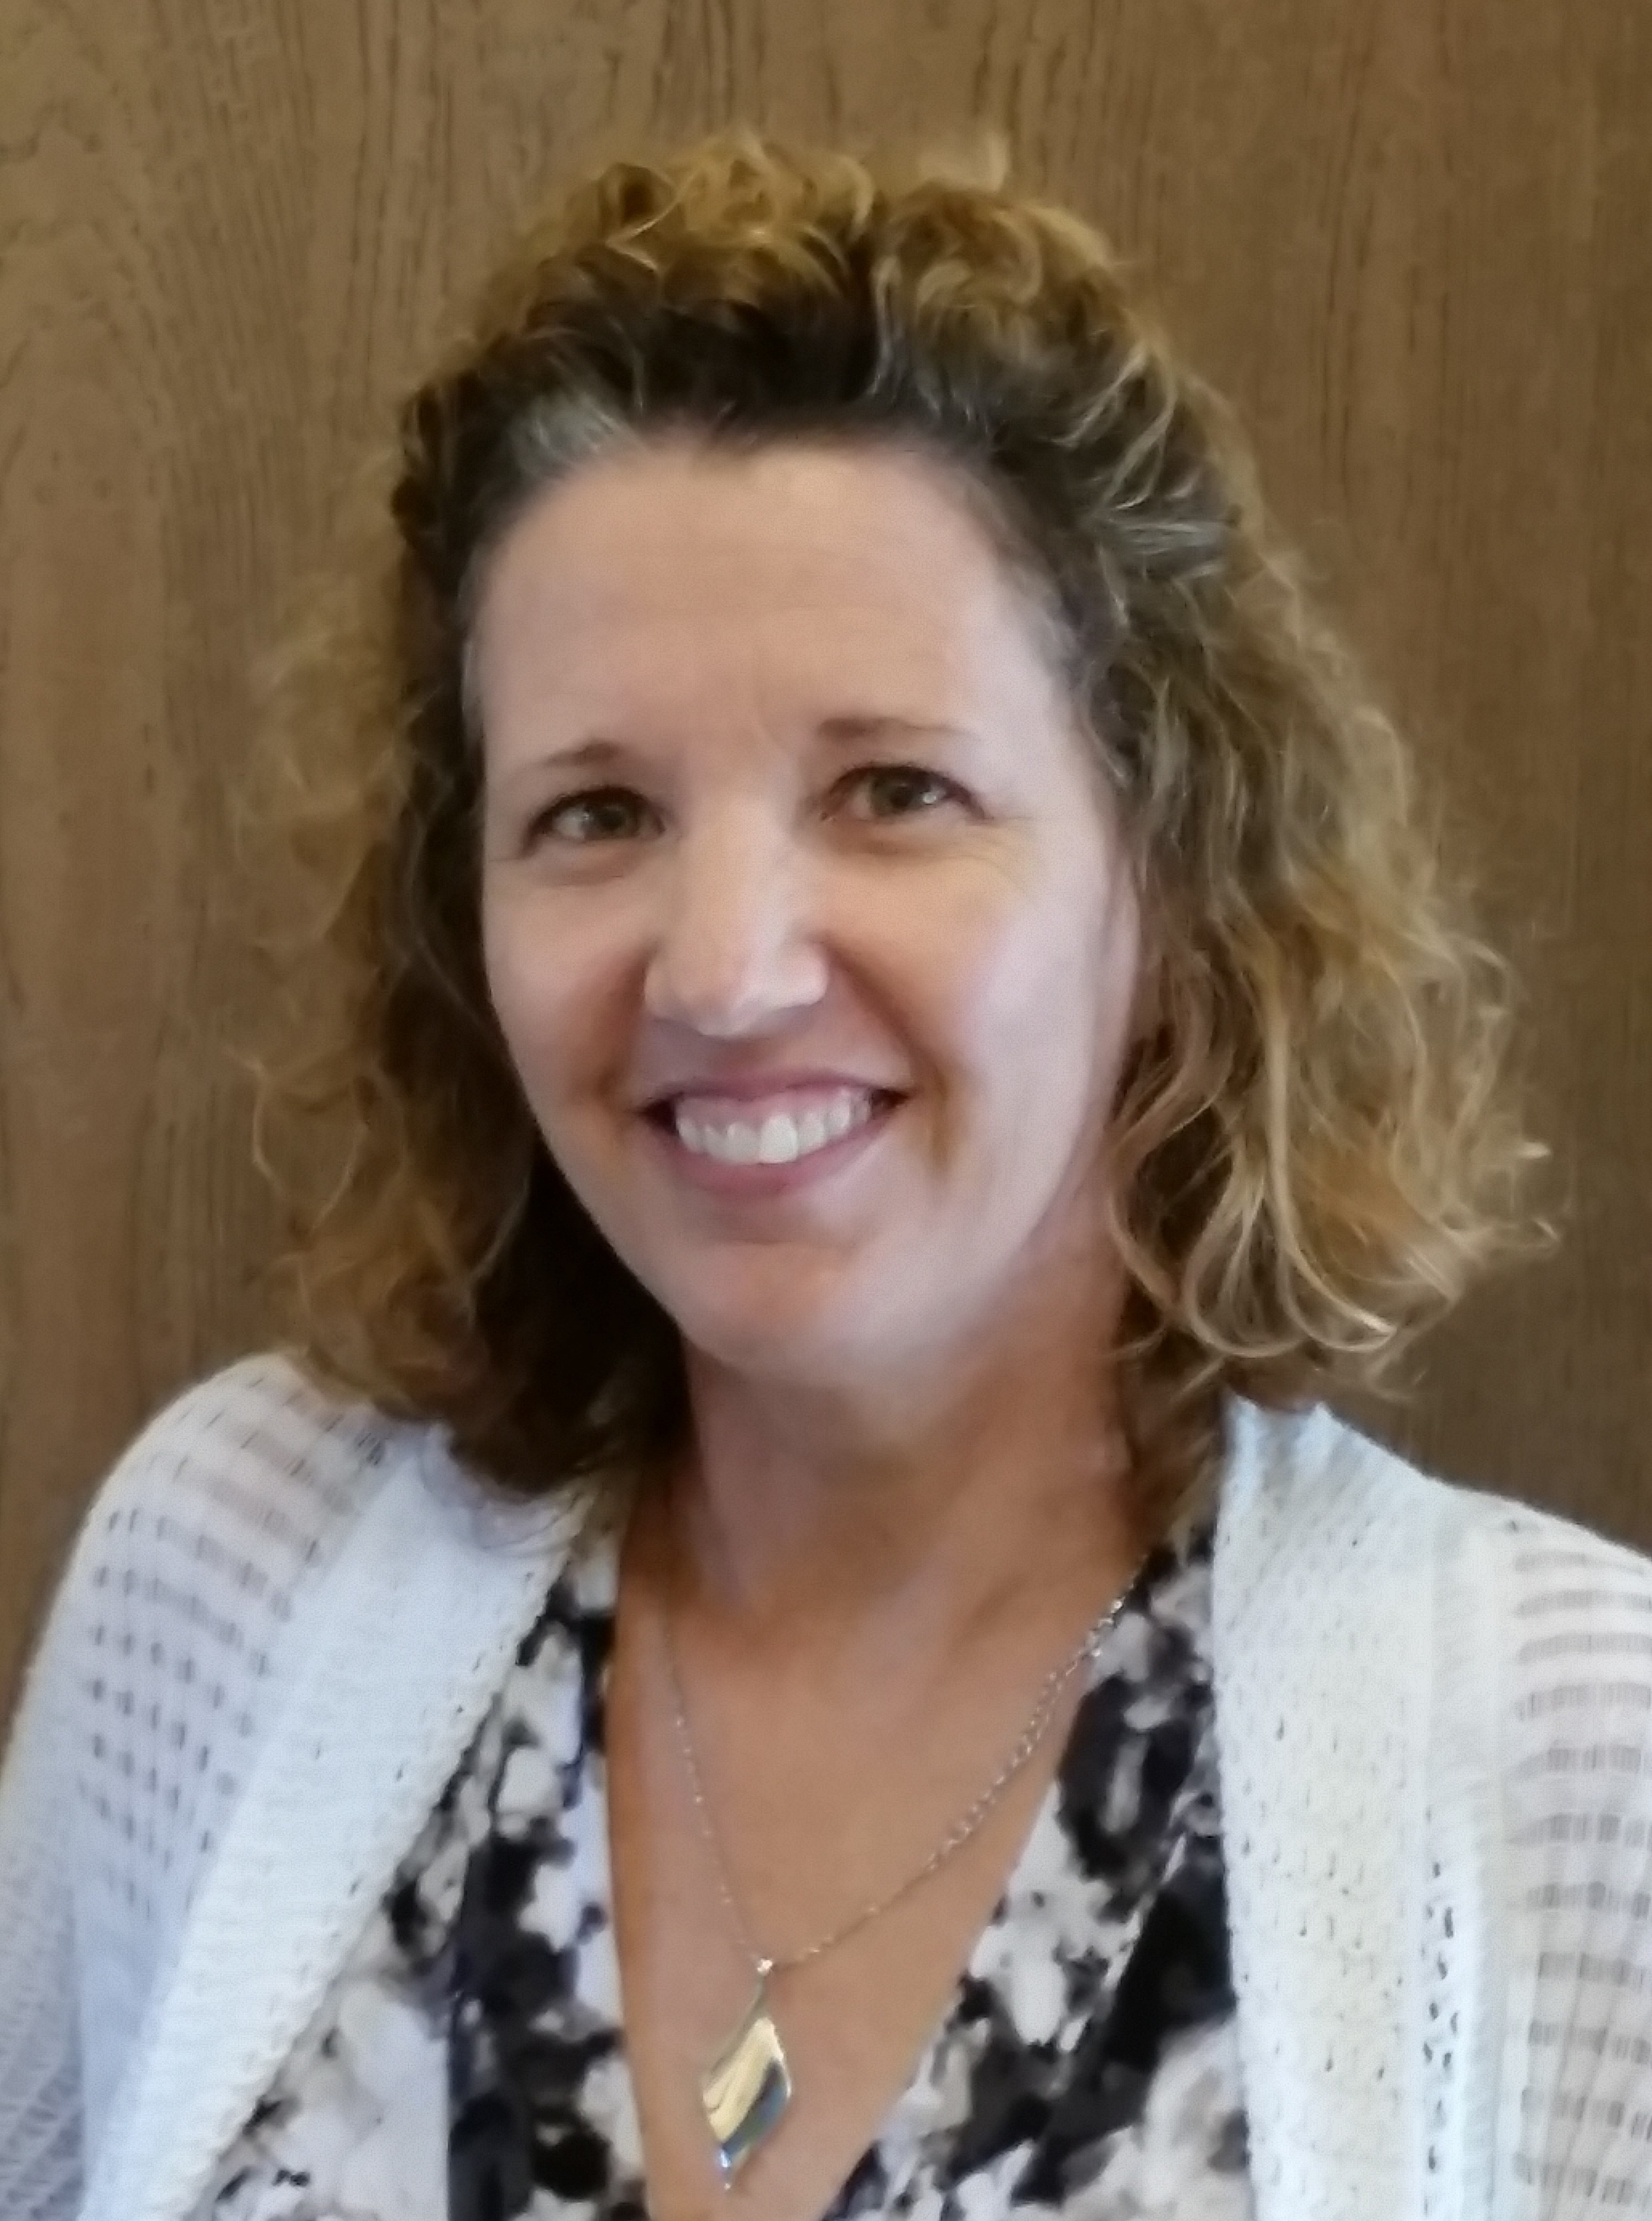 Health south physical therapy - She Continued To Fine Tune Her Skills As A Manual Therapist At Healthsouth And Mission Hills Physical Therapy And Spent 5 Years In Private Practice